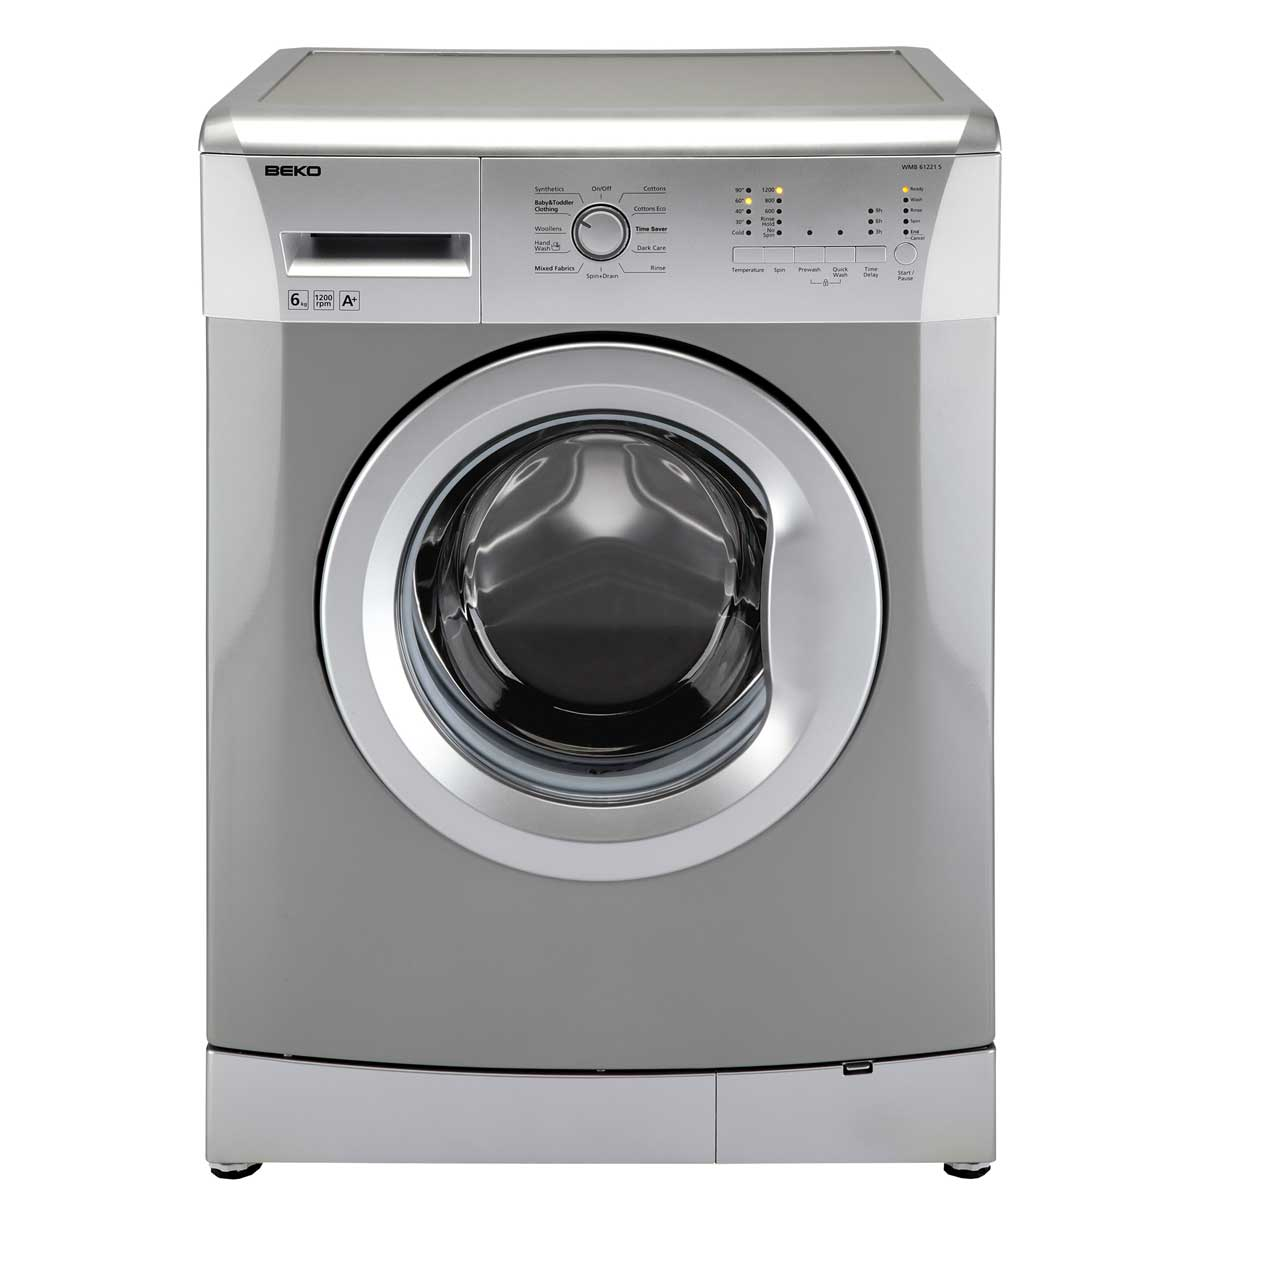 Beko WMB61221S 6Kg Washing Machine with 1200 rpm - Silver